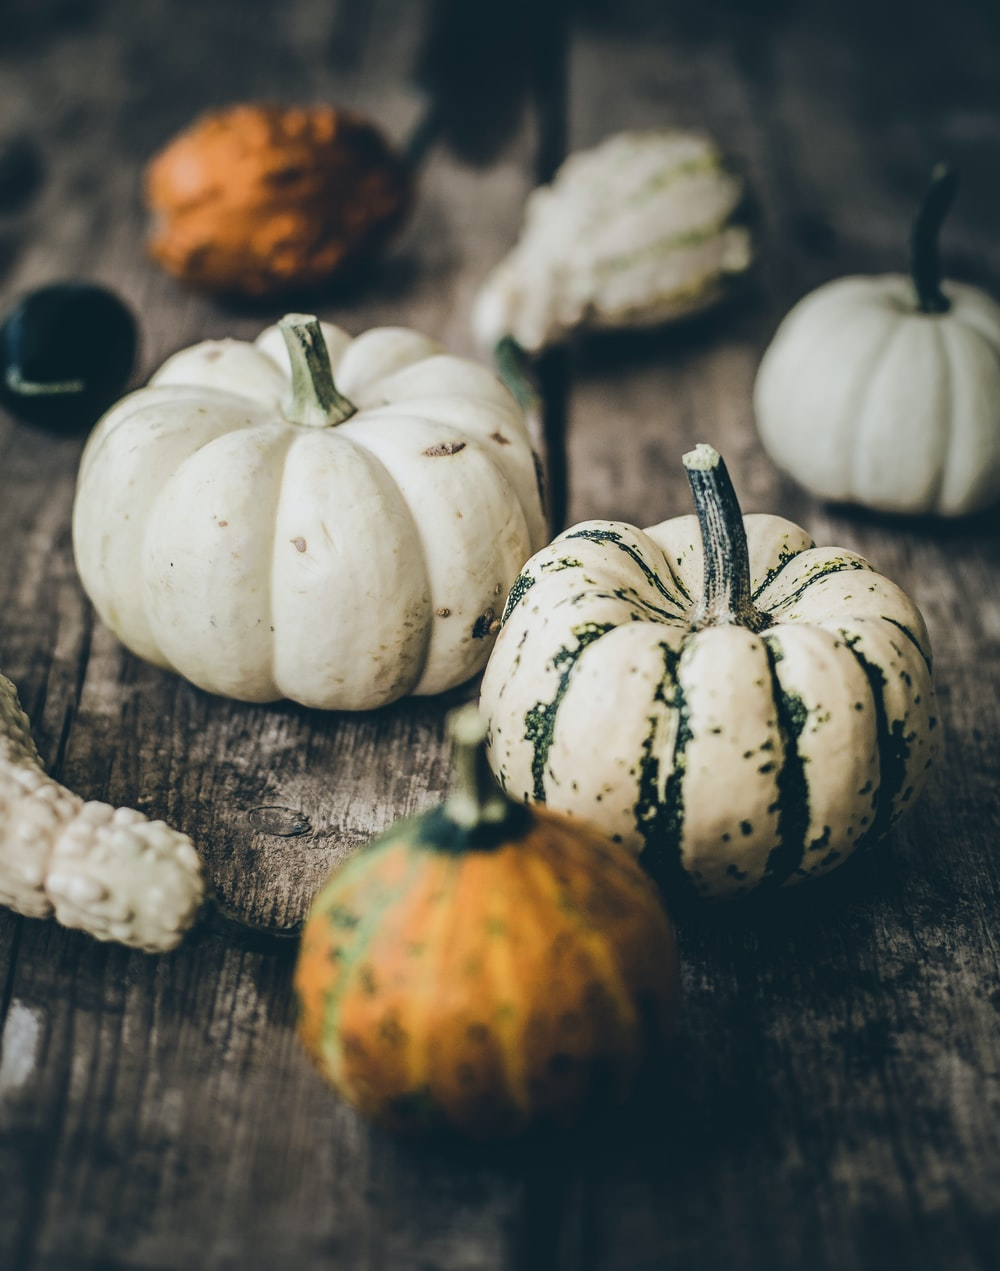 selective focus photography of white and orange pumpkins on gray wooden surface